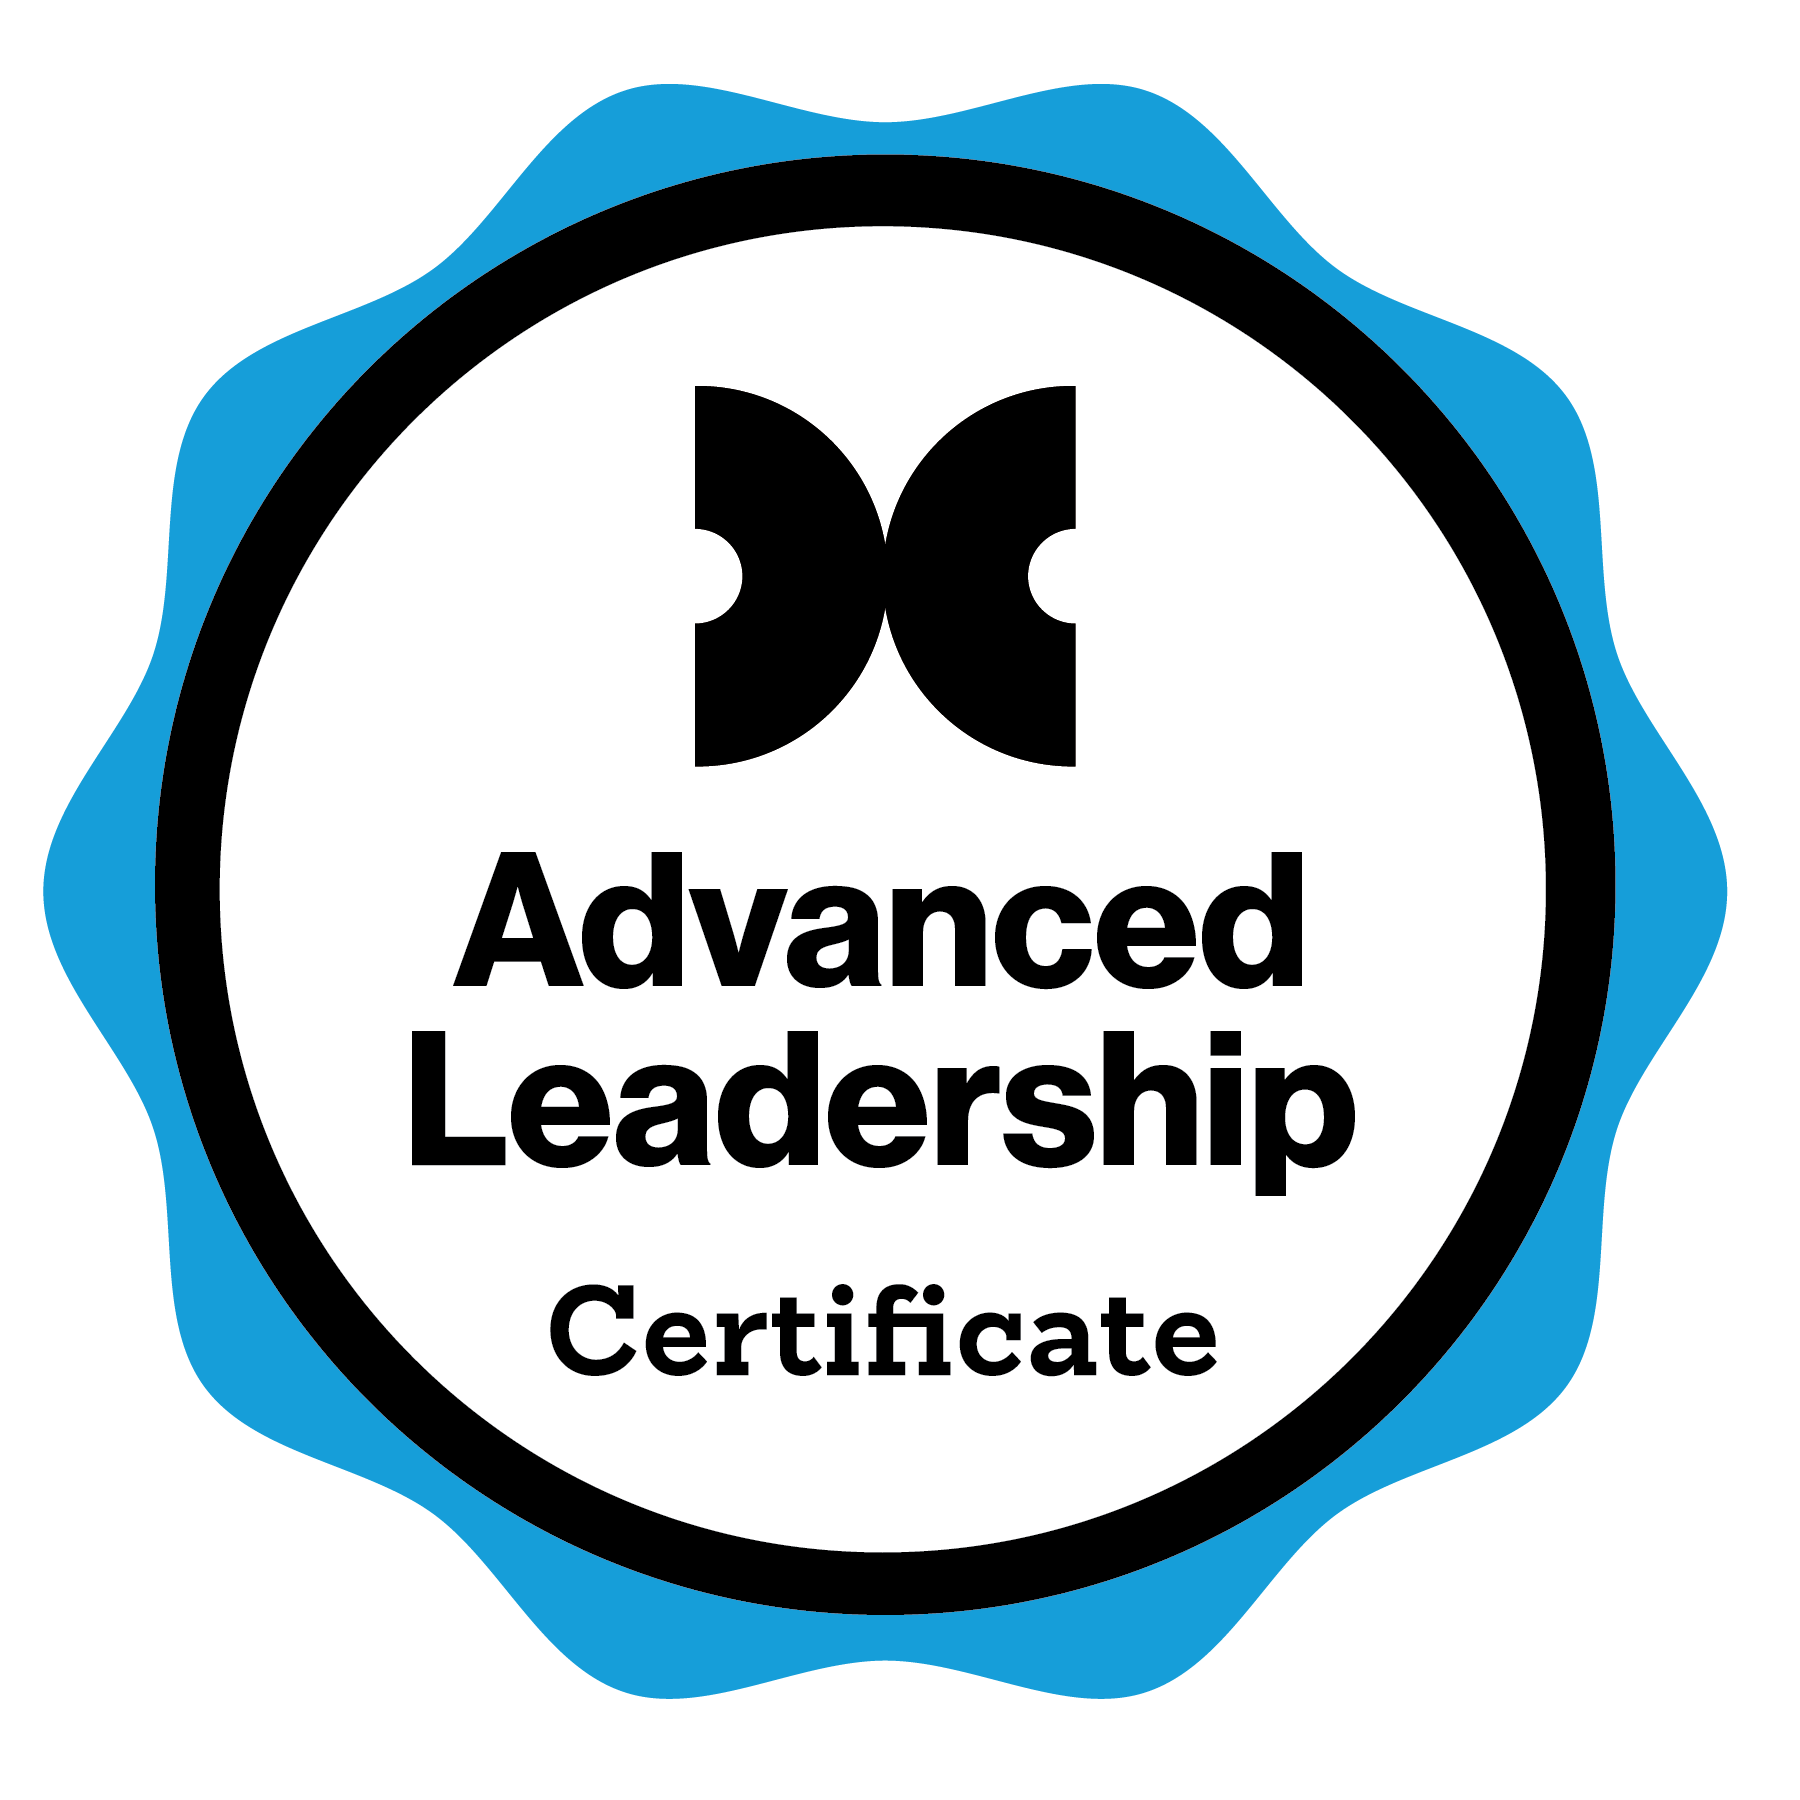 Advanced Leadership Certificate, Dale Carnegie of Singapore, Professional Training Courses